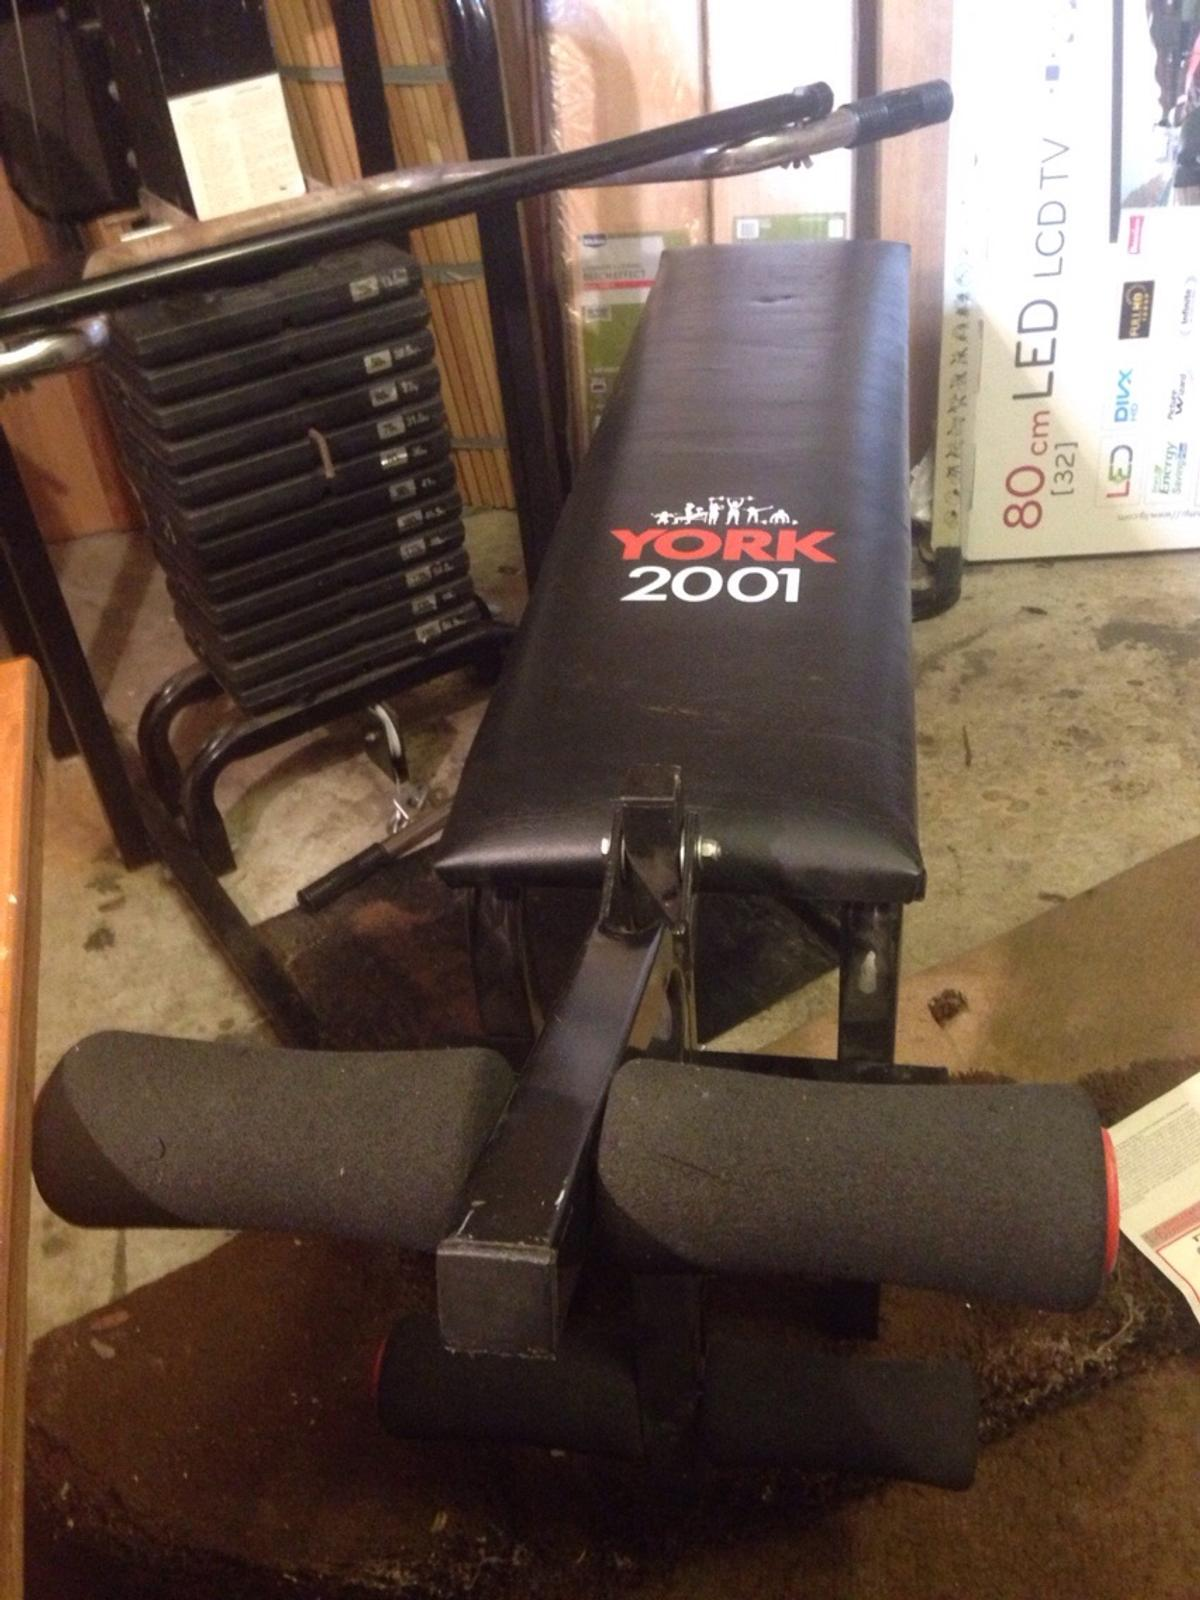 York 2001 Multigym FREE in BR2 Bromley for free for sale